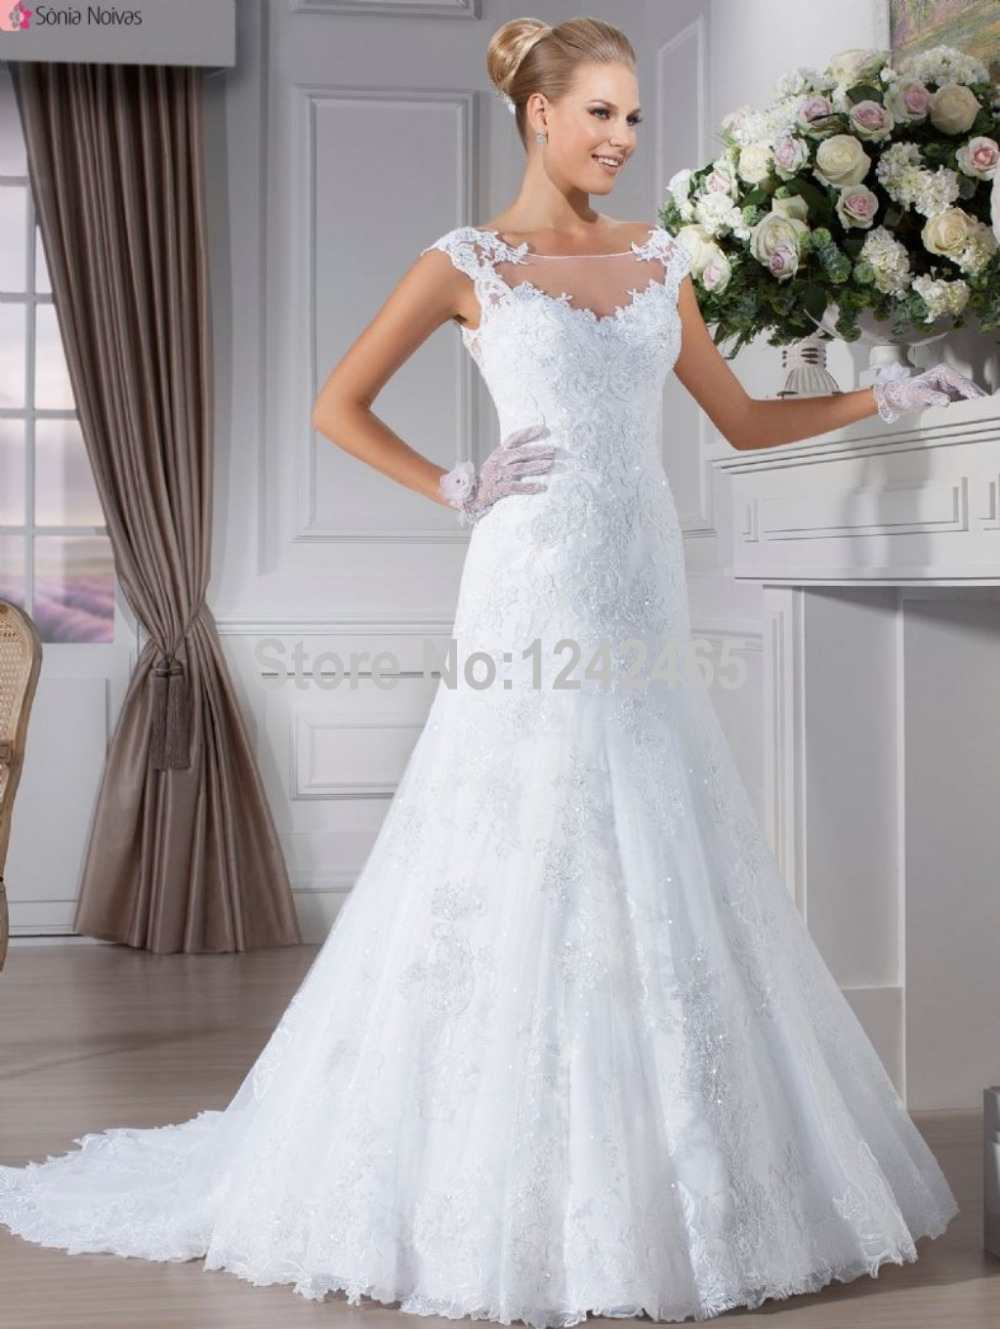 organza sleeveless classic wedding dress boat neck wedding dress sleeveless wedding dress illusion boat neckline organza sleeveless wedding dress illusion boat neckline